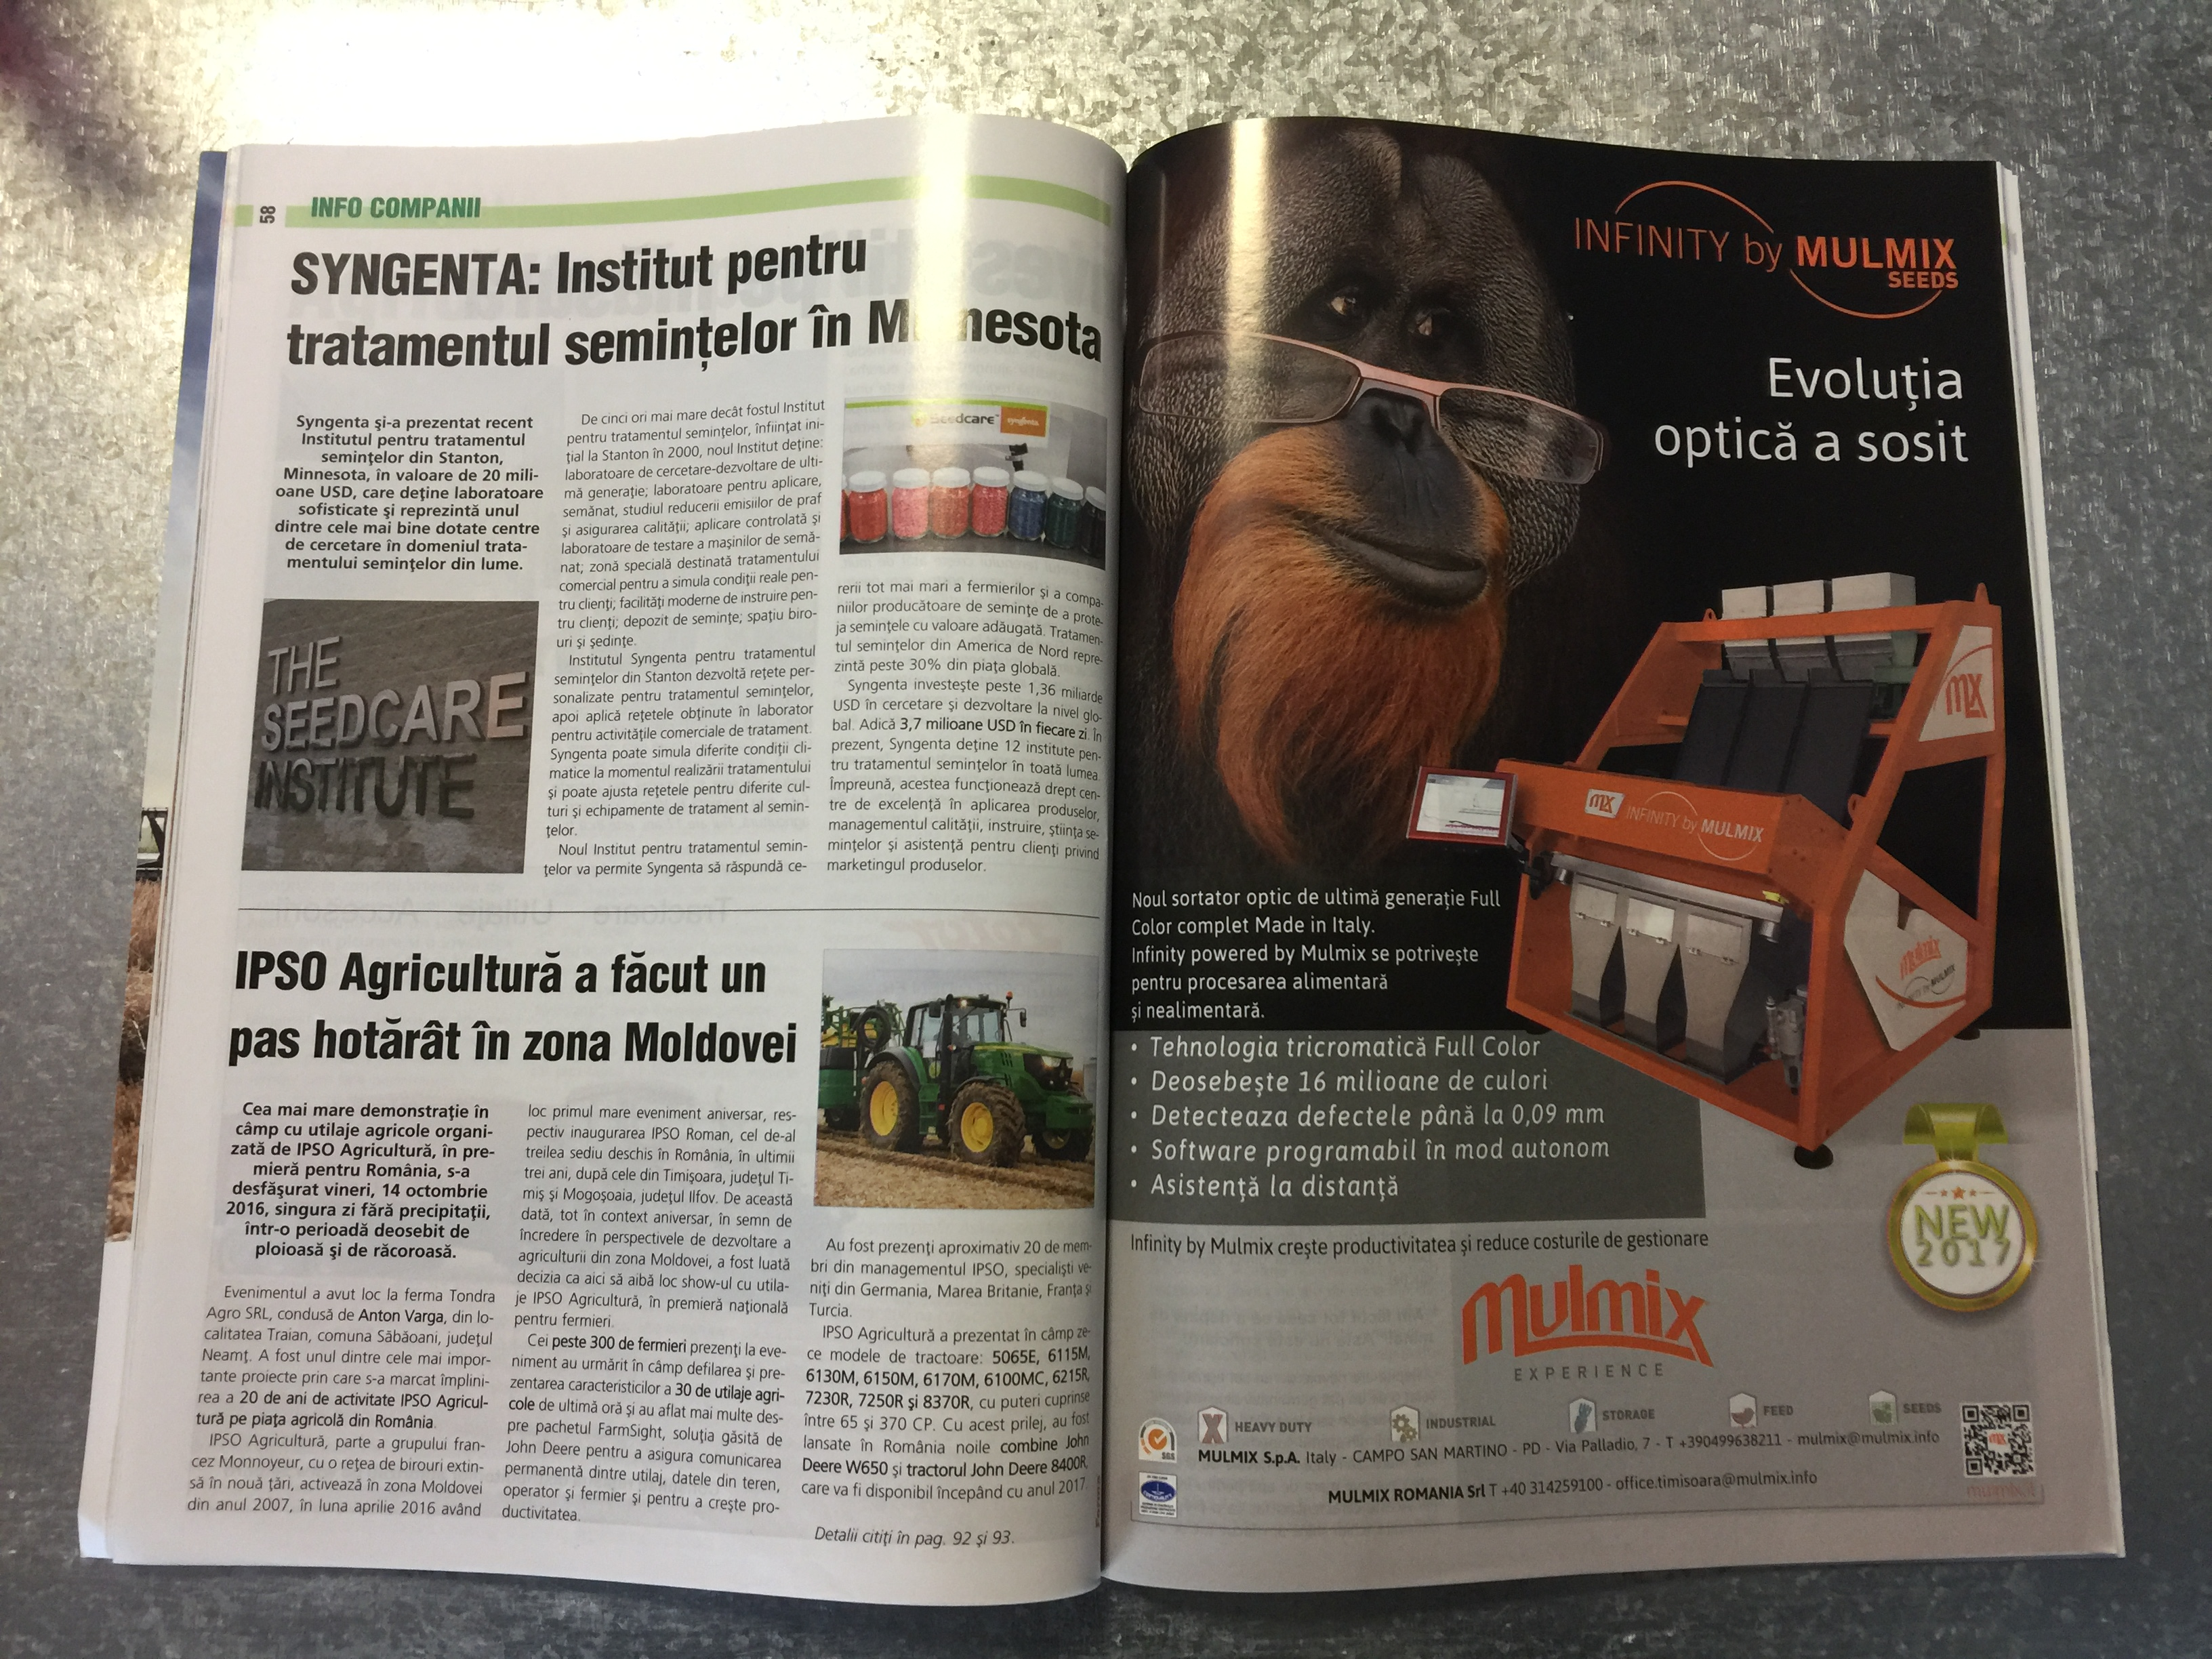 We are glad to present as a preview on Ferma magazine Romania, the new optical sorter Infinity by Mulmix